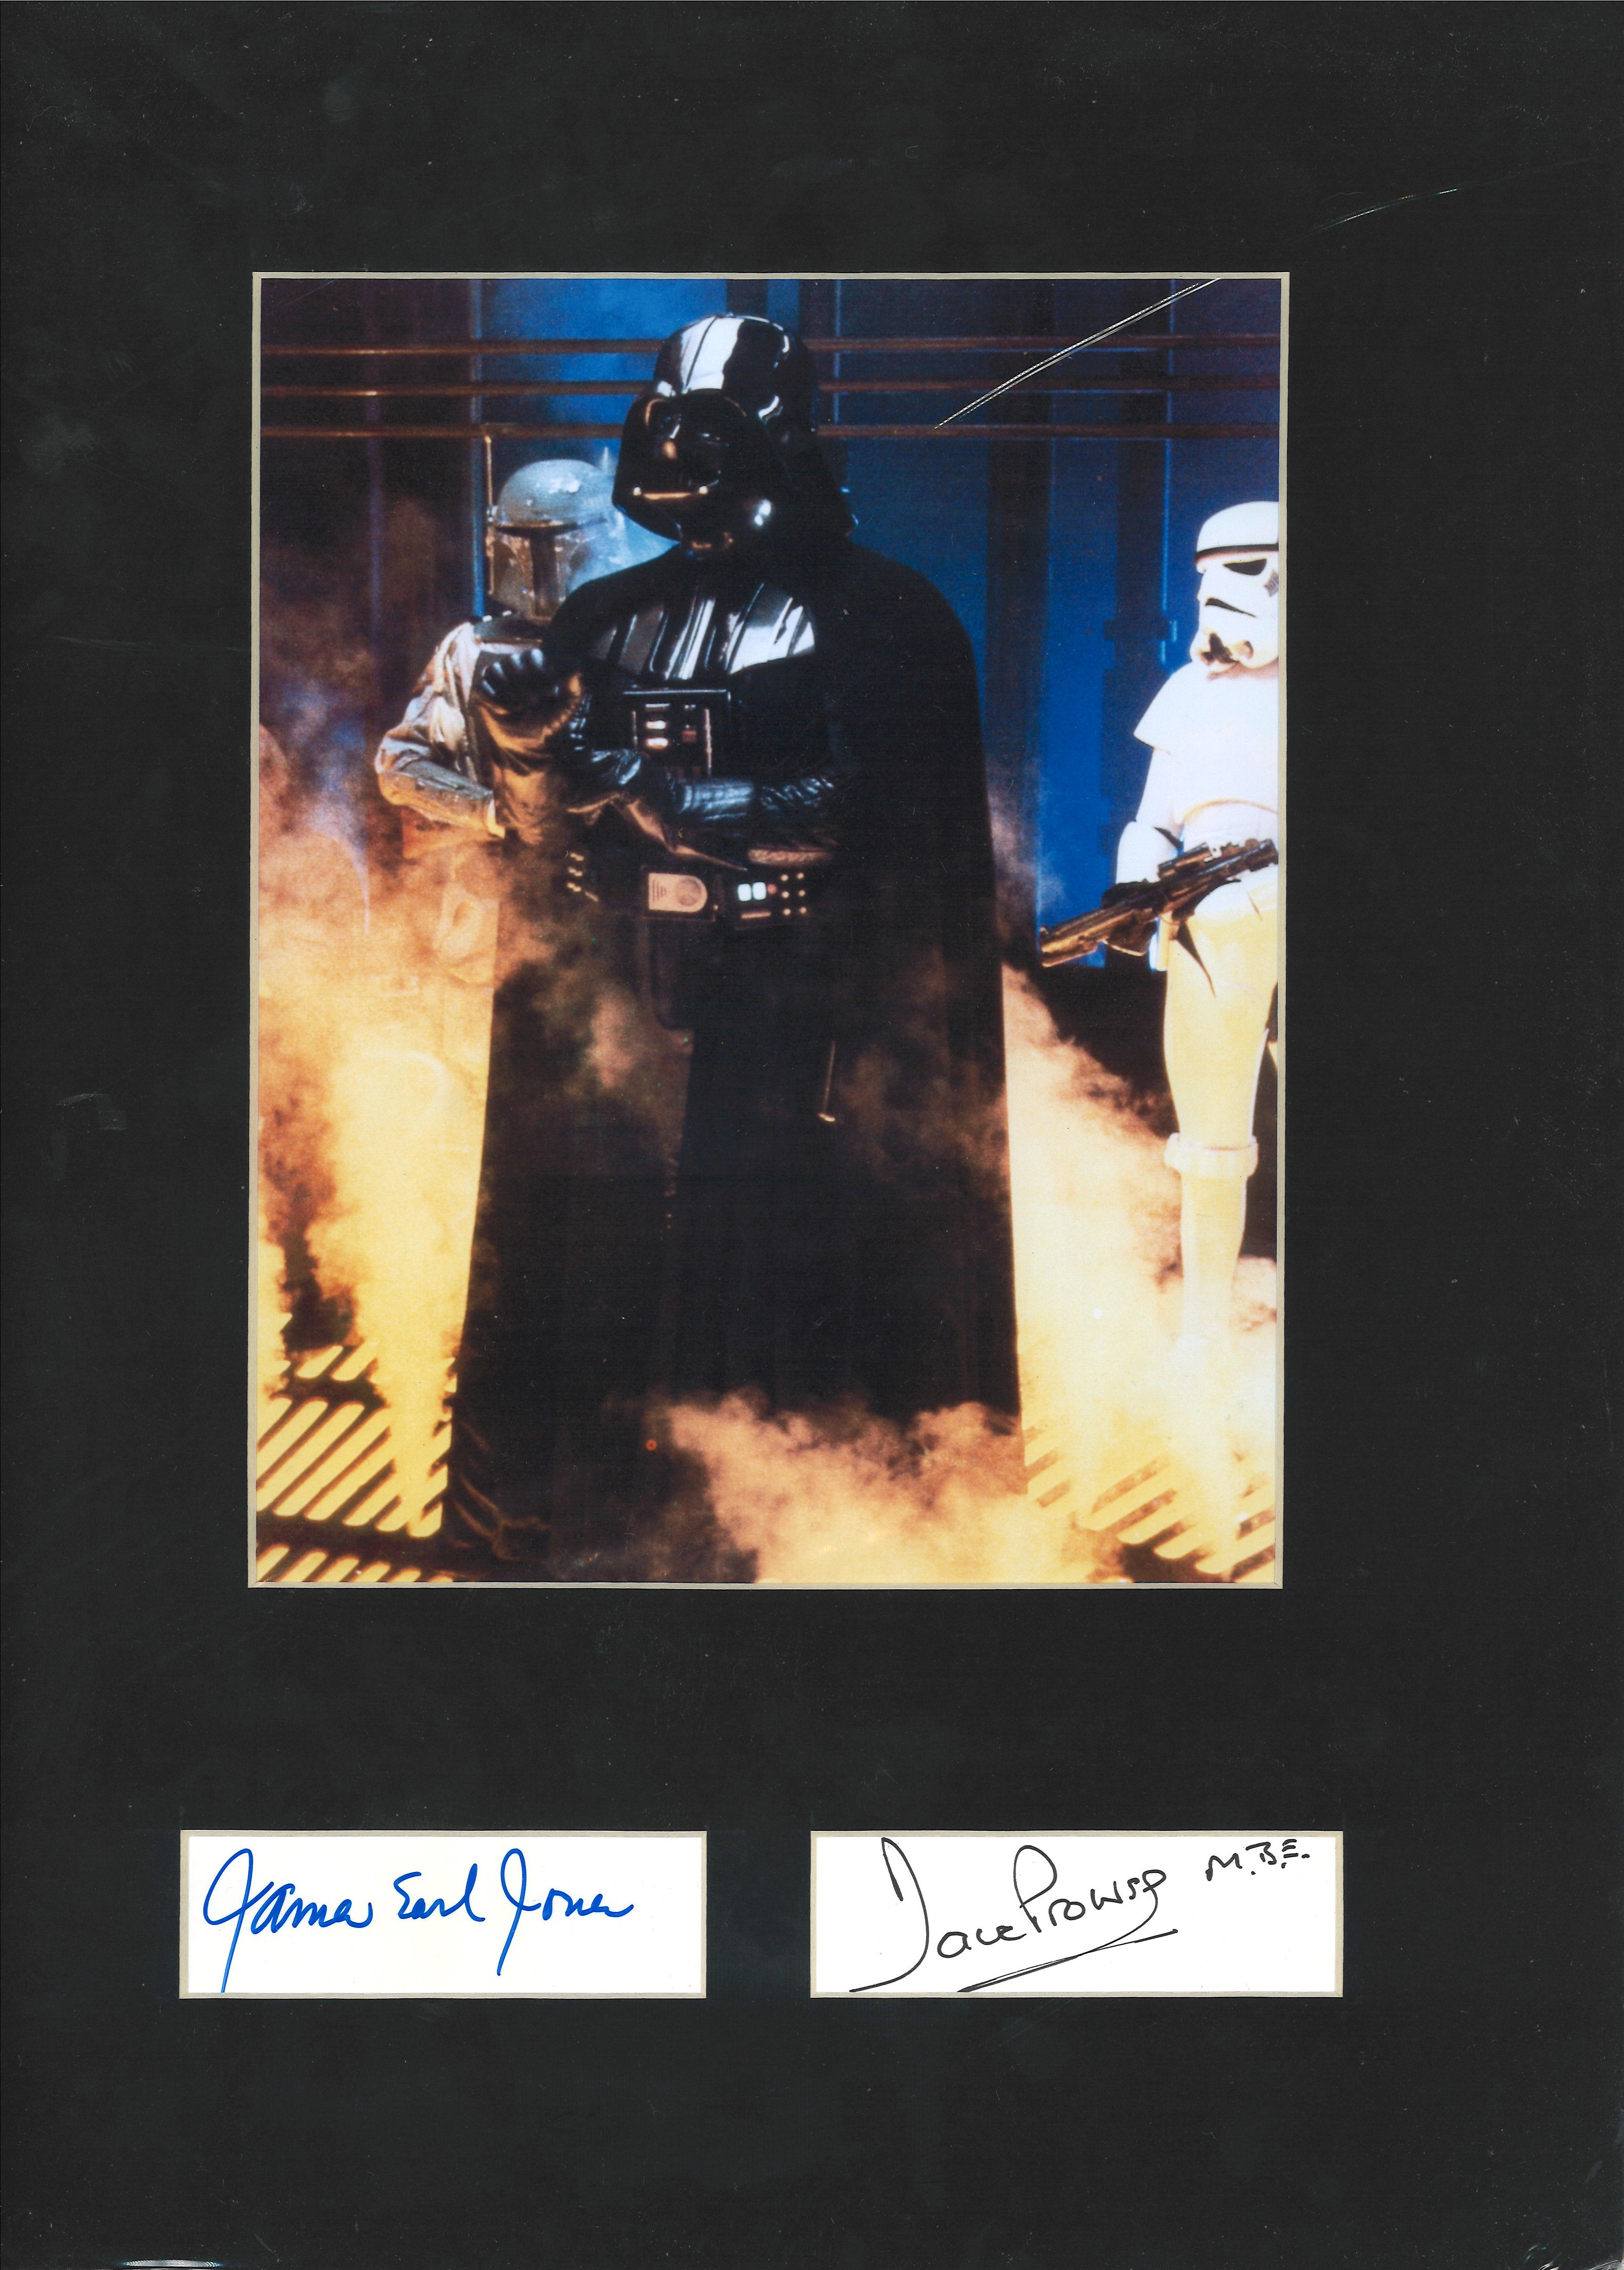 Star Wars 16x12 overall James Earl Jones and Dave Prowse signature piece  including 9x7 Darth Vade